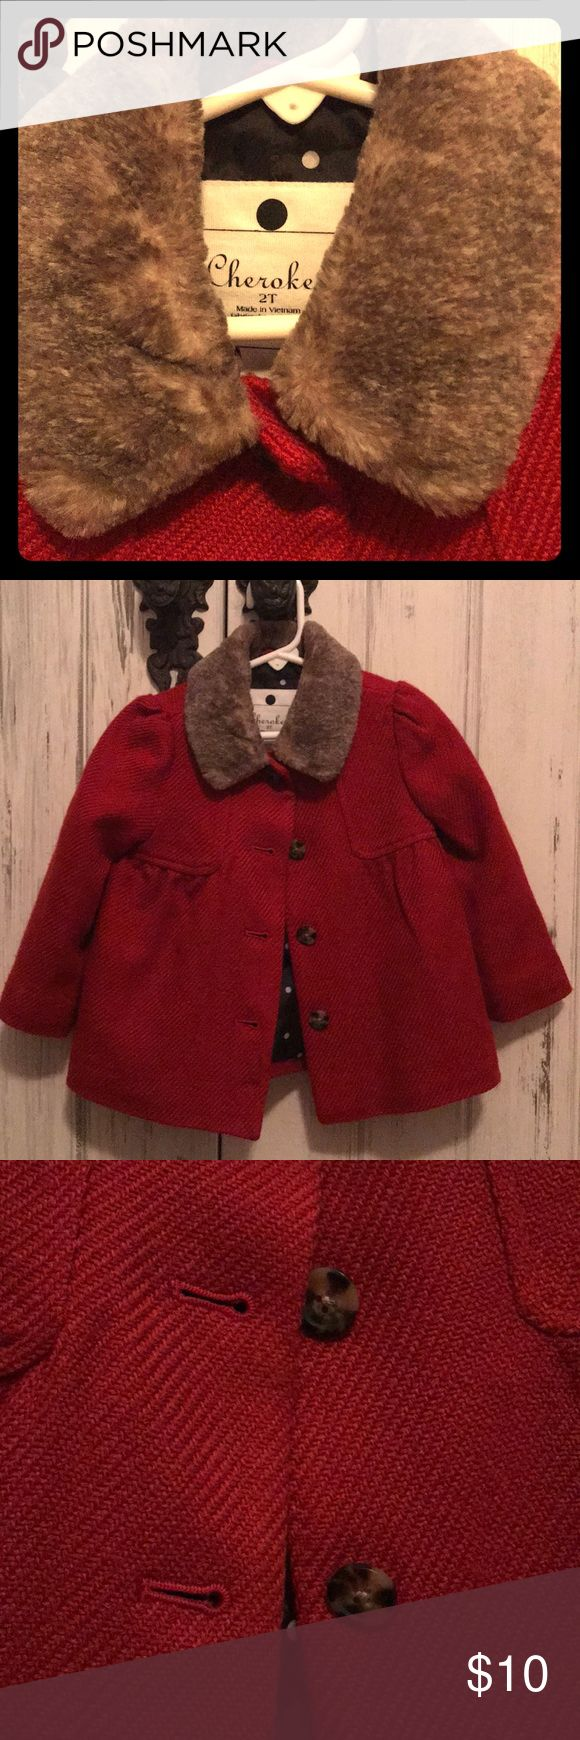 Red Cherokee coat with faux fur collar Deep Red Girls Peacoat with faux fur collar. Polka dot lining and 4 buttons Cherokee Jackets & Coats Pea Coats